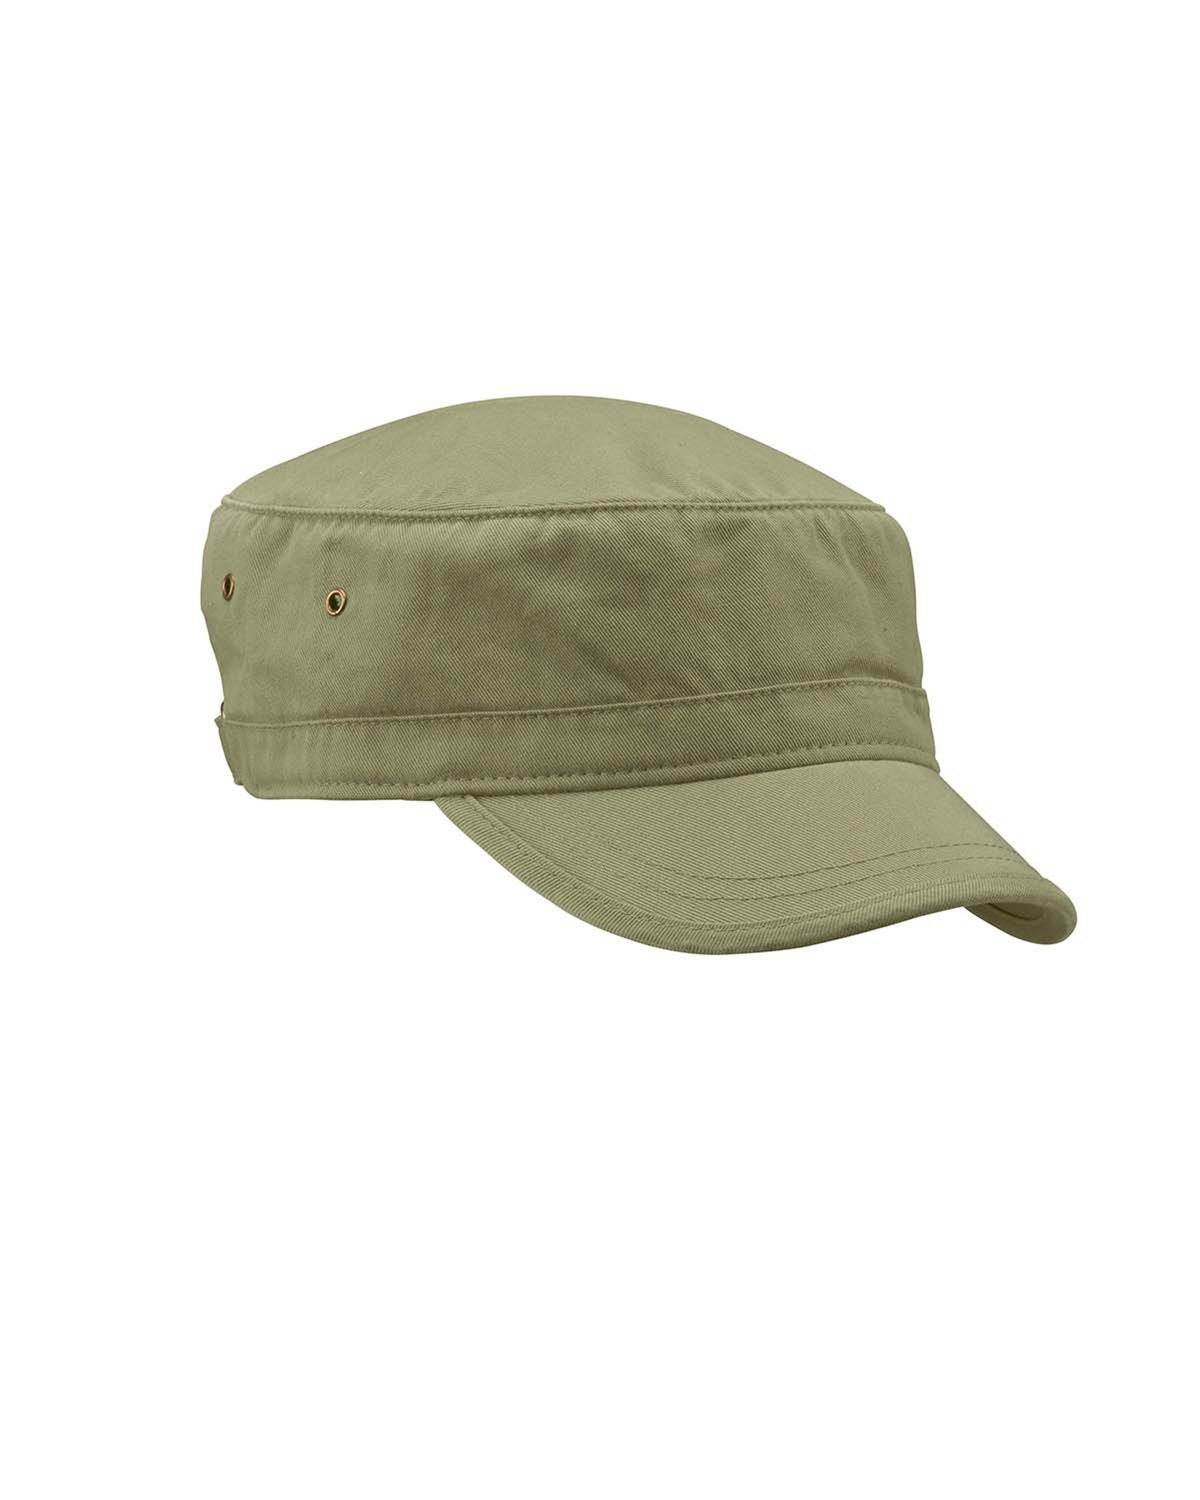 econscious 100% Organic Cotton Twill Corps Hat - Army